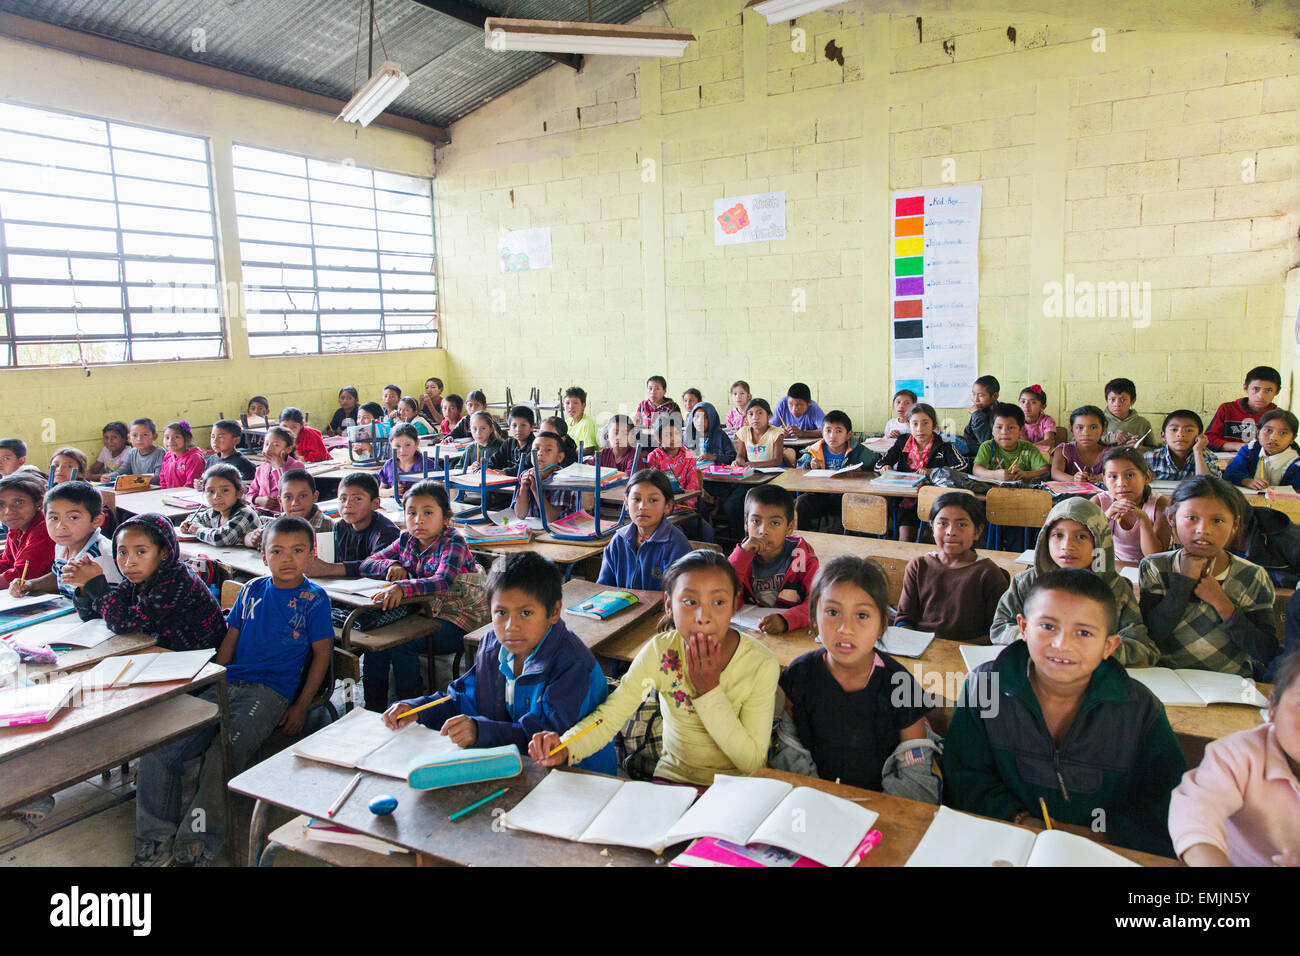 Guatemala,Jalapa, school children crowded into a classroom - Stock Image